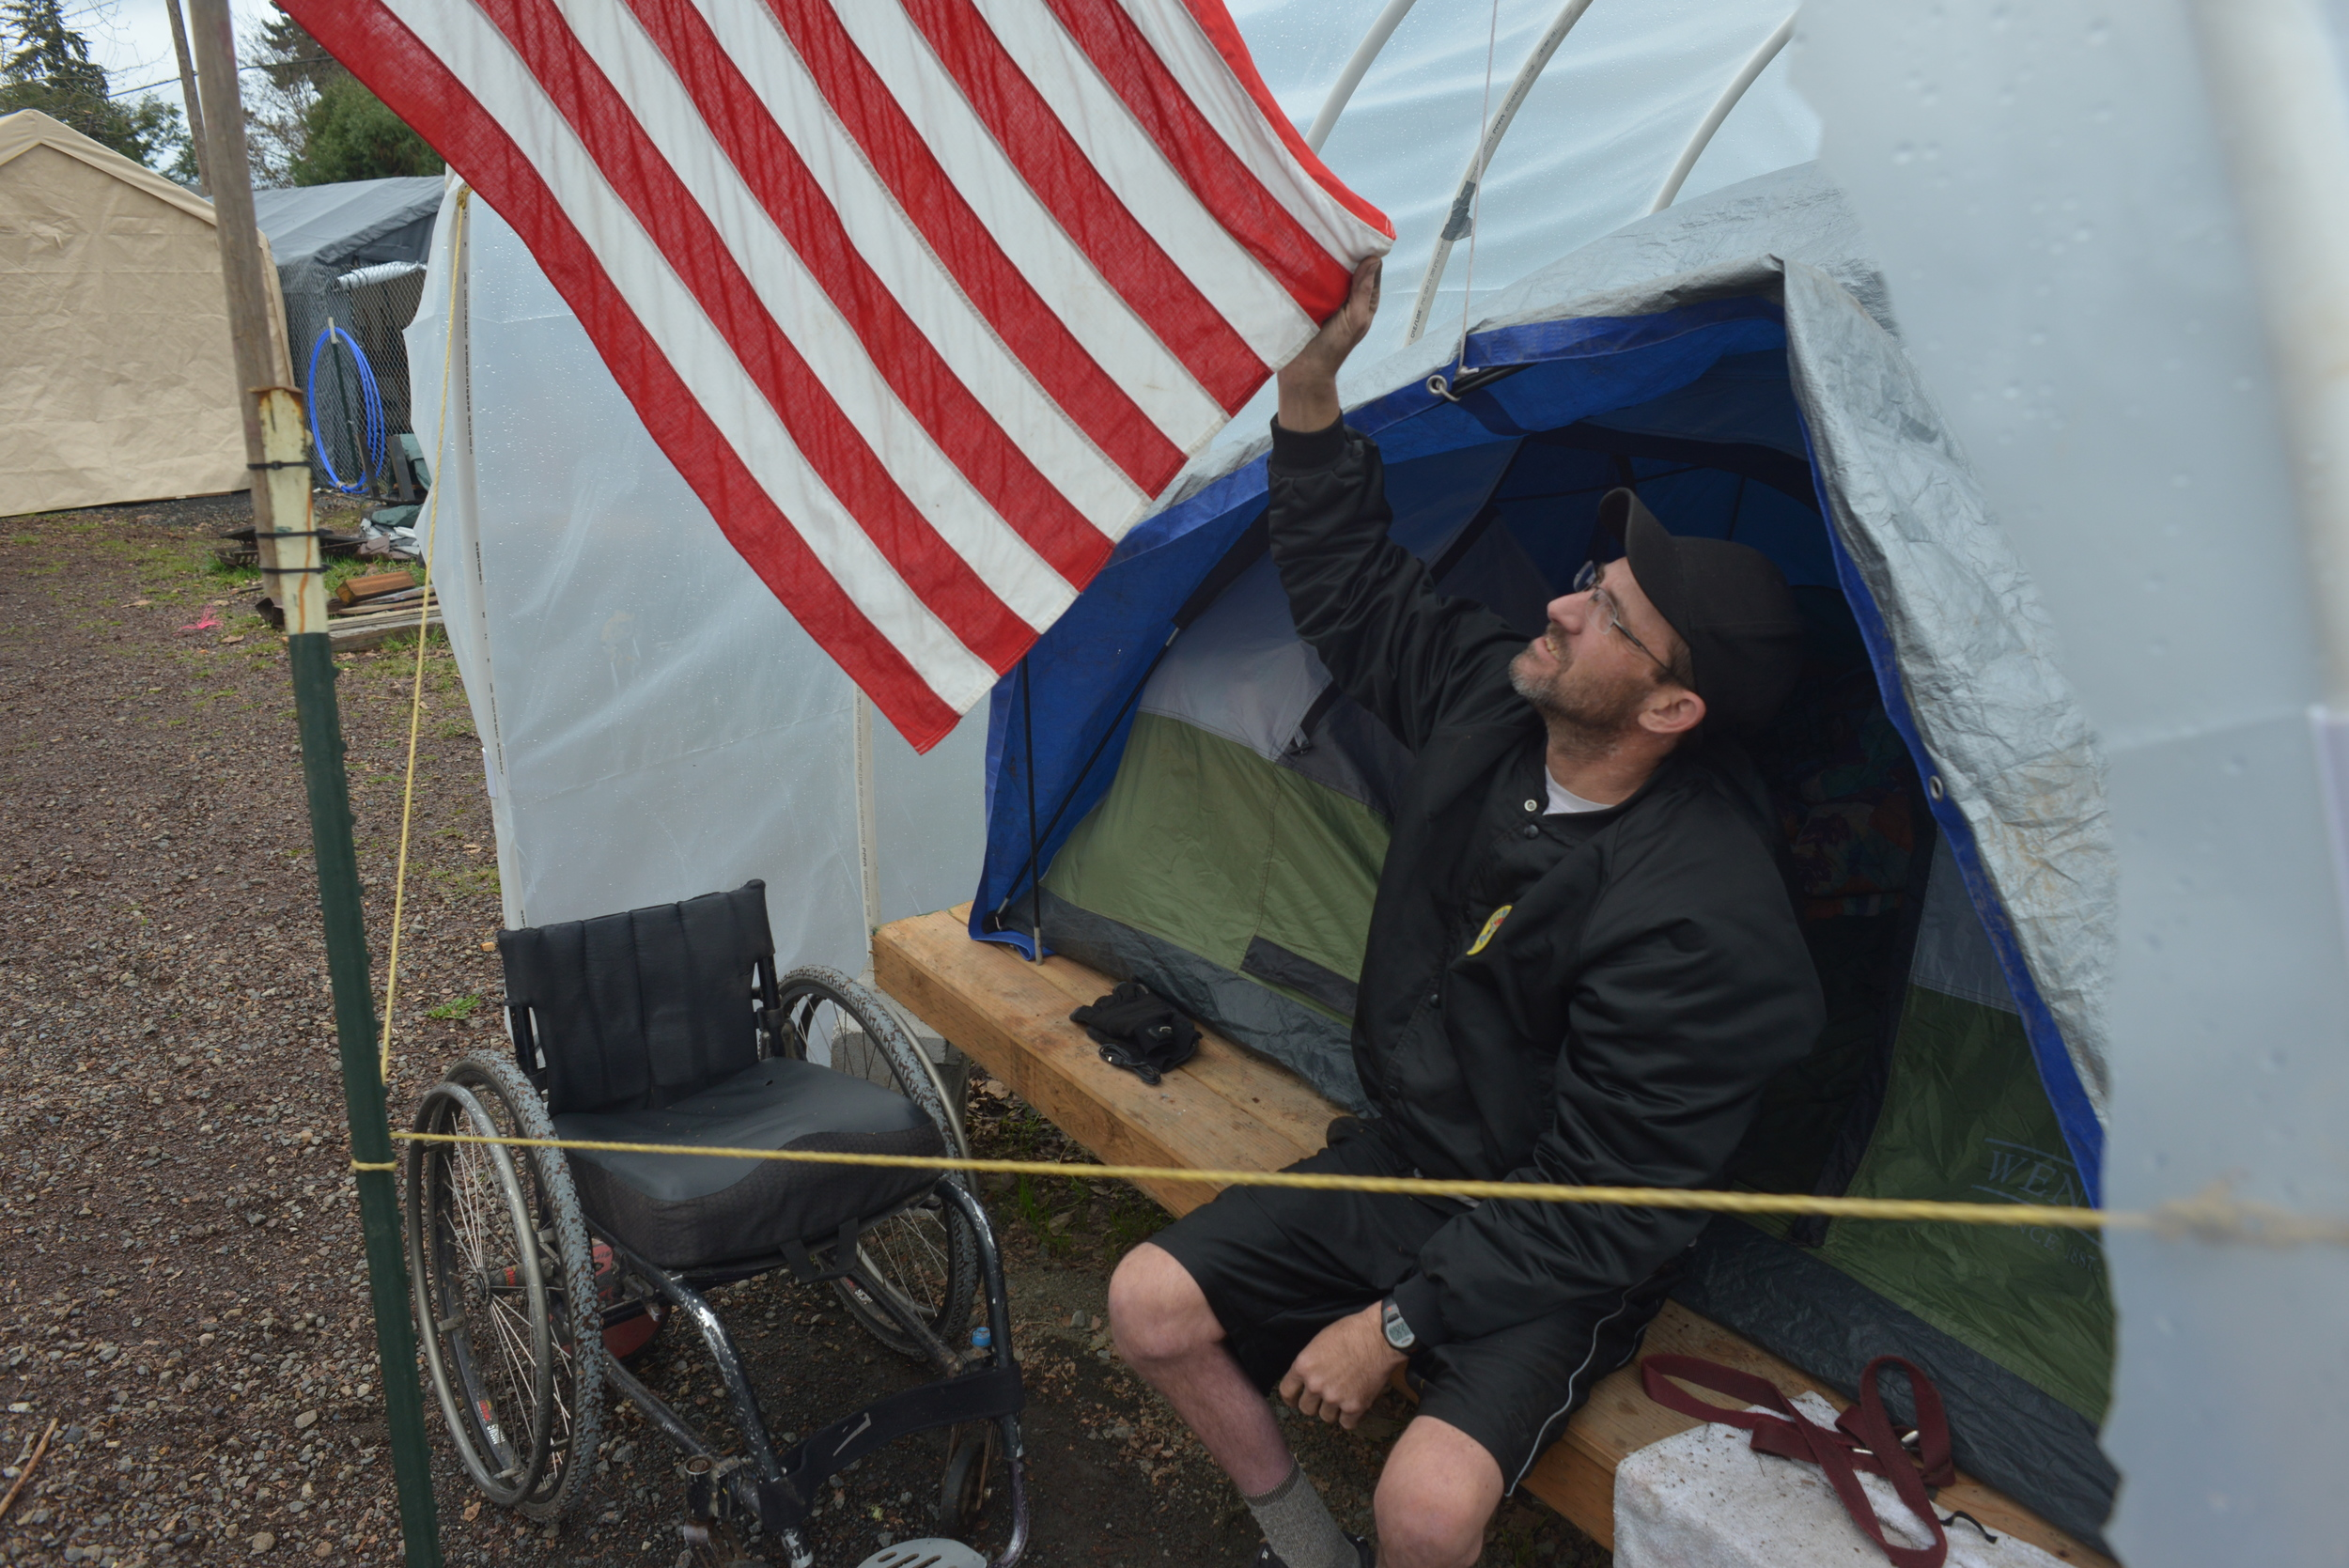 """Eugene, ORE - """"Medicine Man"""" Eric holds the American flag at his conestega housing. He says he is grateful for the opportunity to live at Nightingale Health Sanctuary. Photo by: Debra Josephson"""